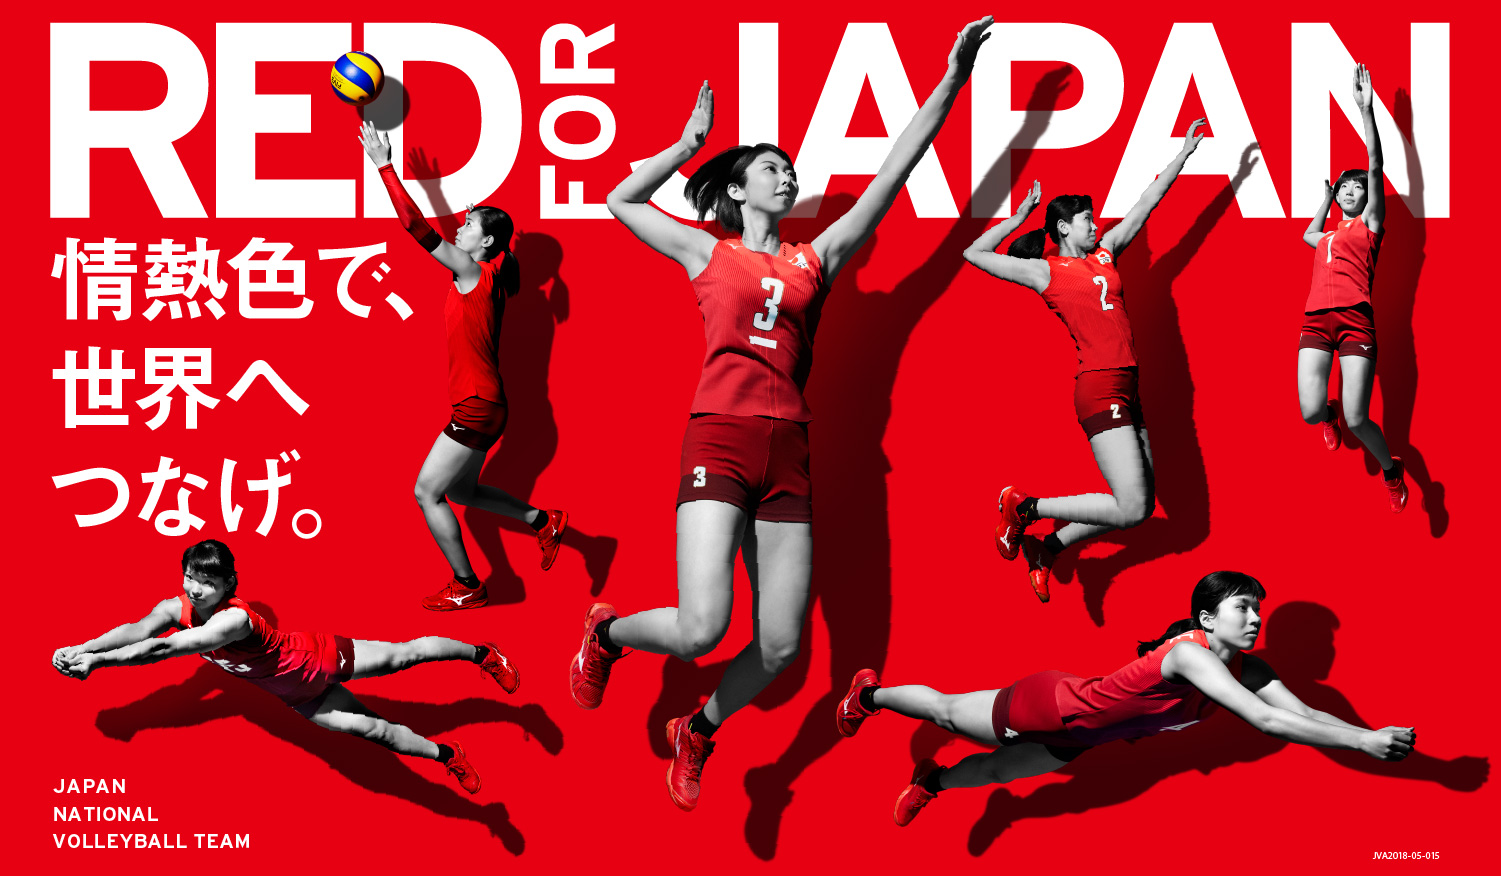 RED FOR JAPAN全日本女子バレー...